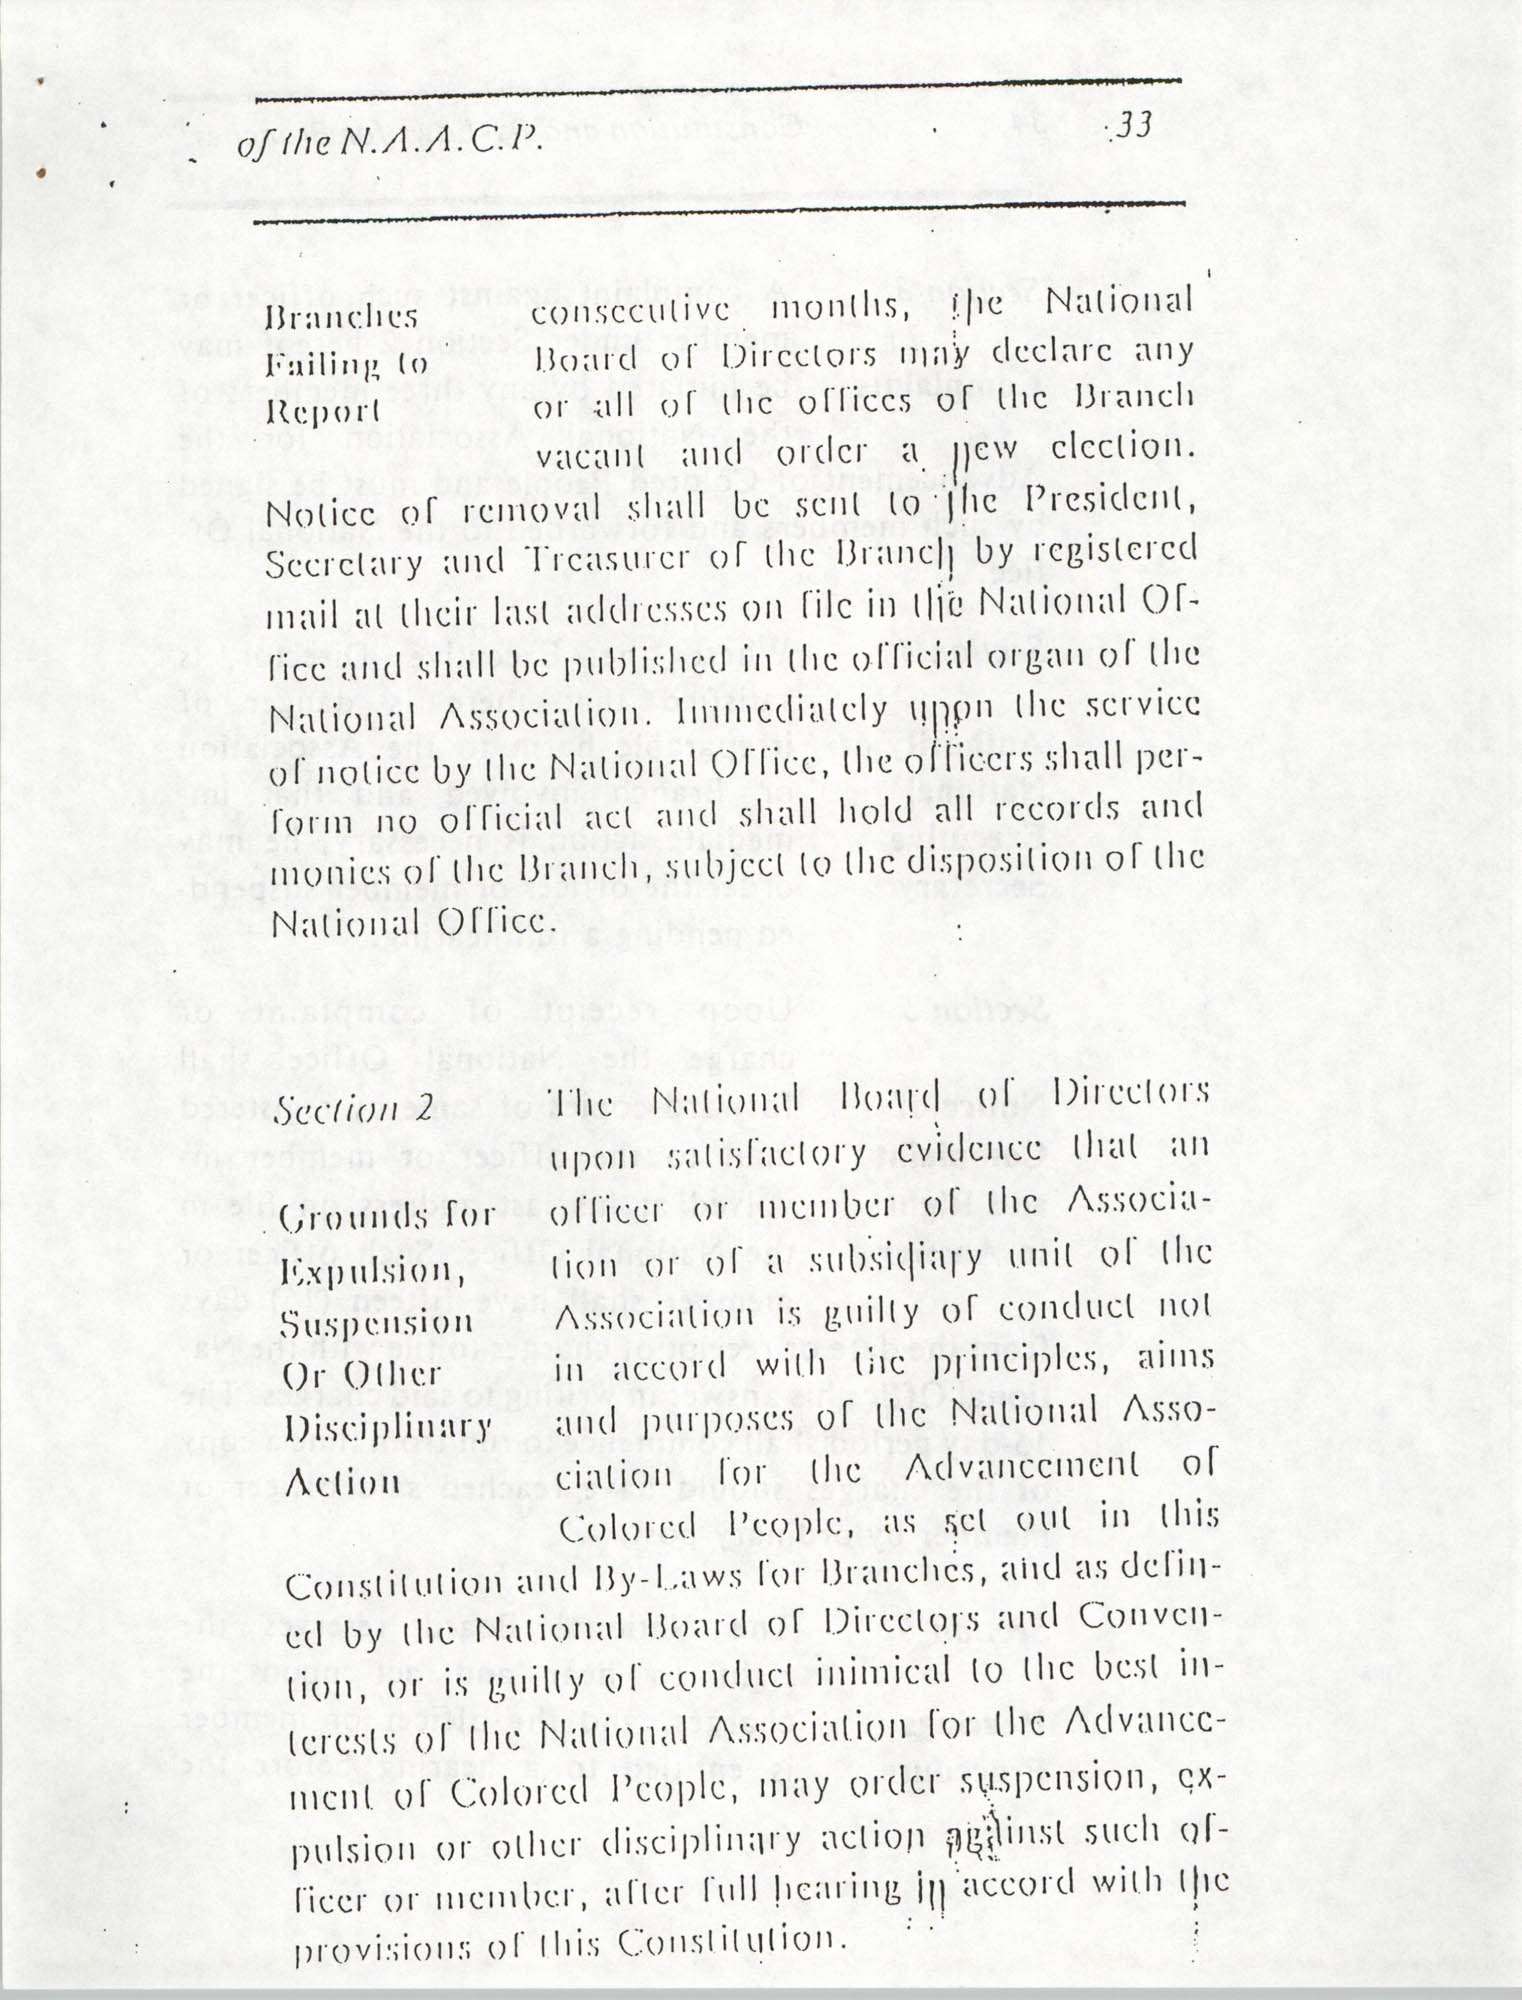 Constitution and By-Laws for Branches of the NAACP, March 1992, Page 33